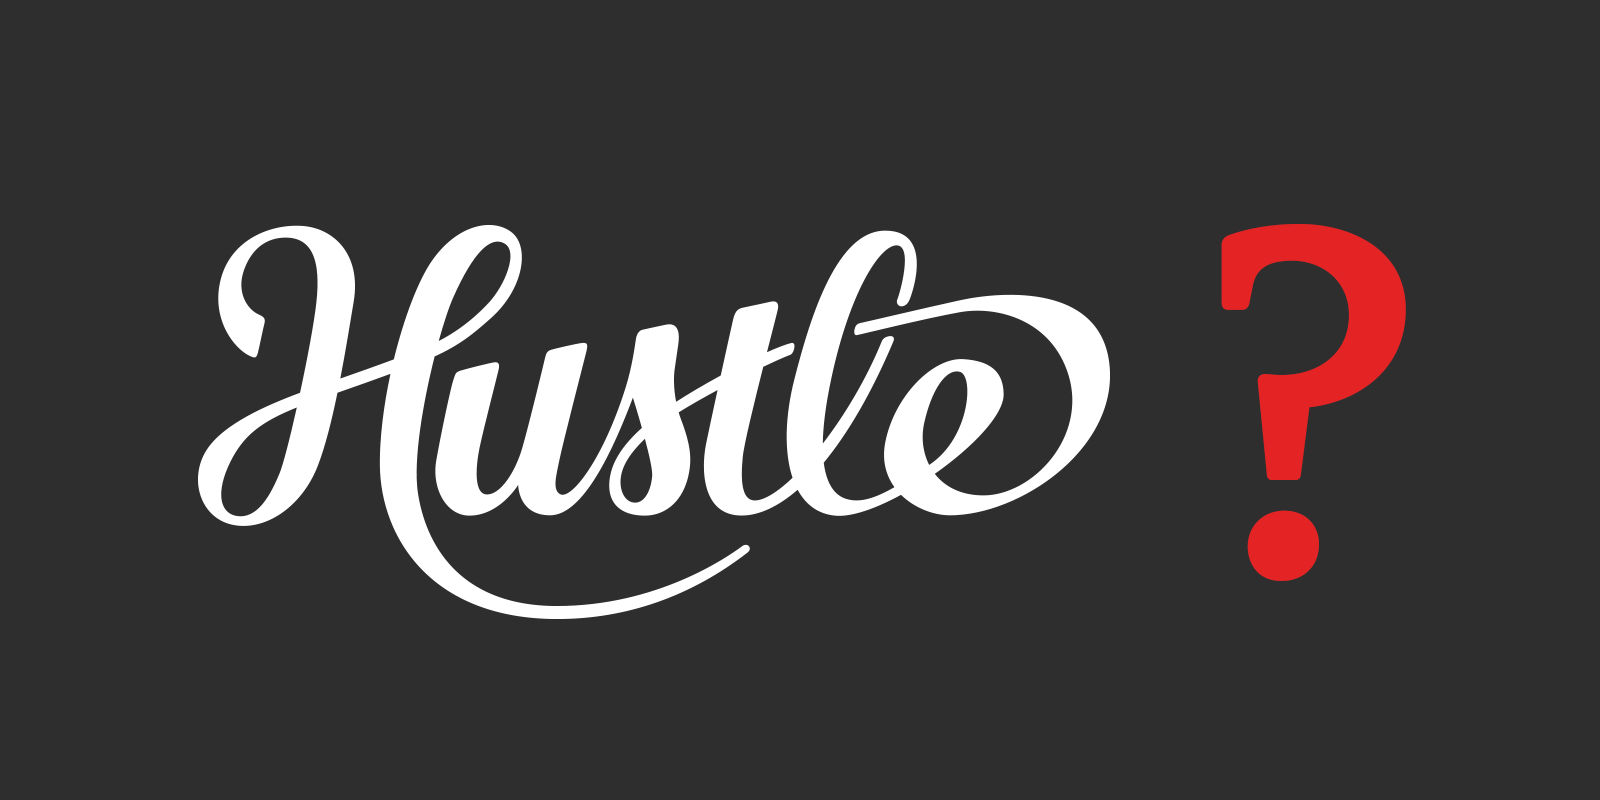 Let's Talk About Hustle